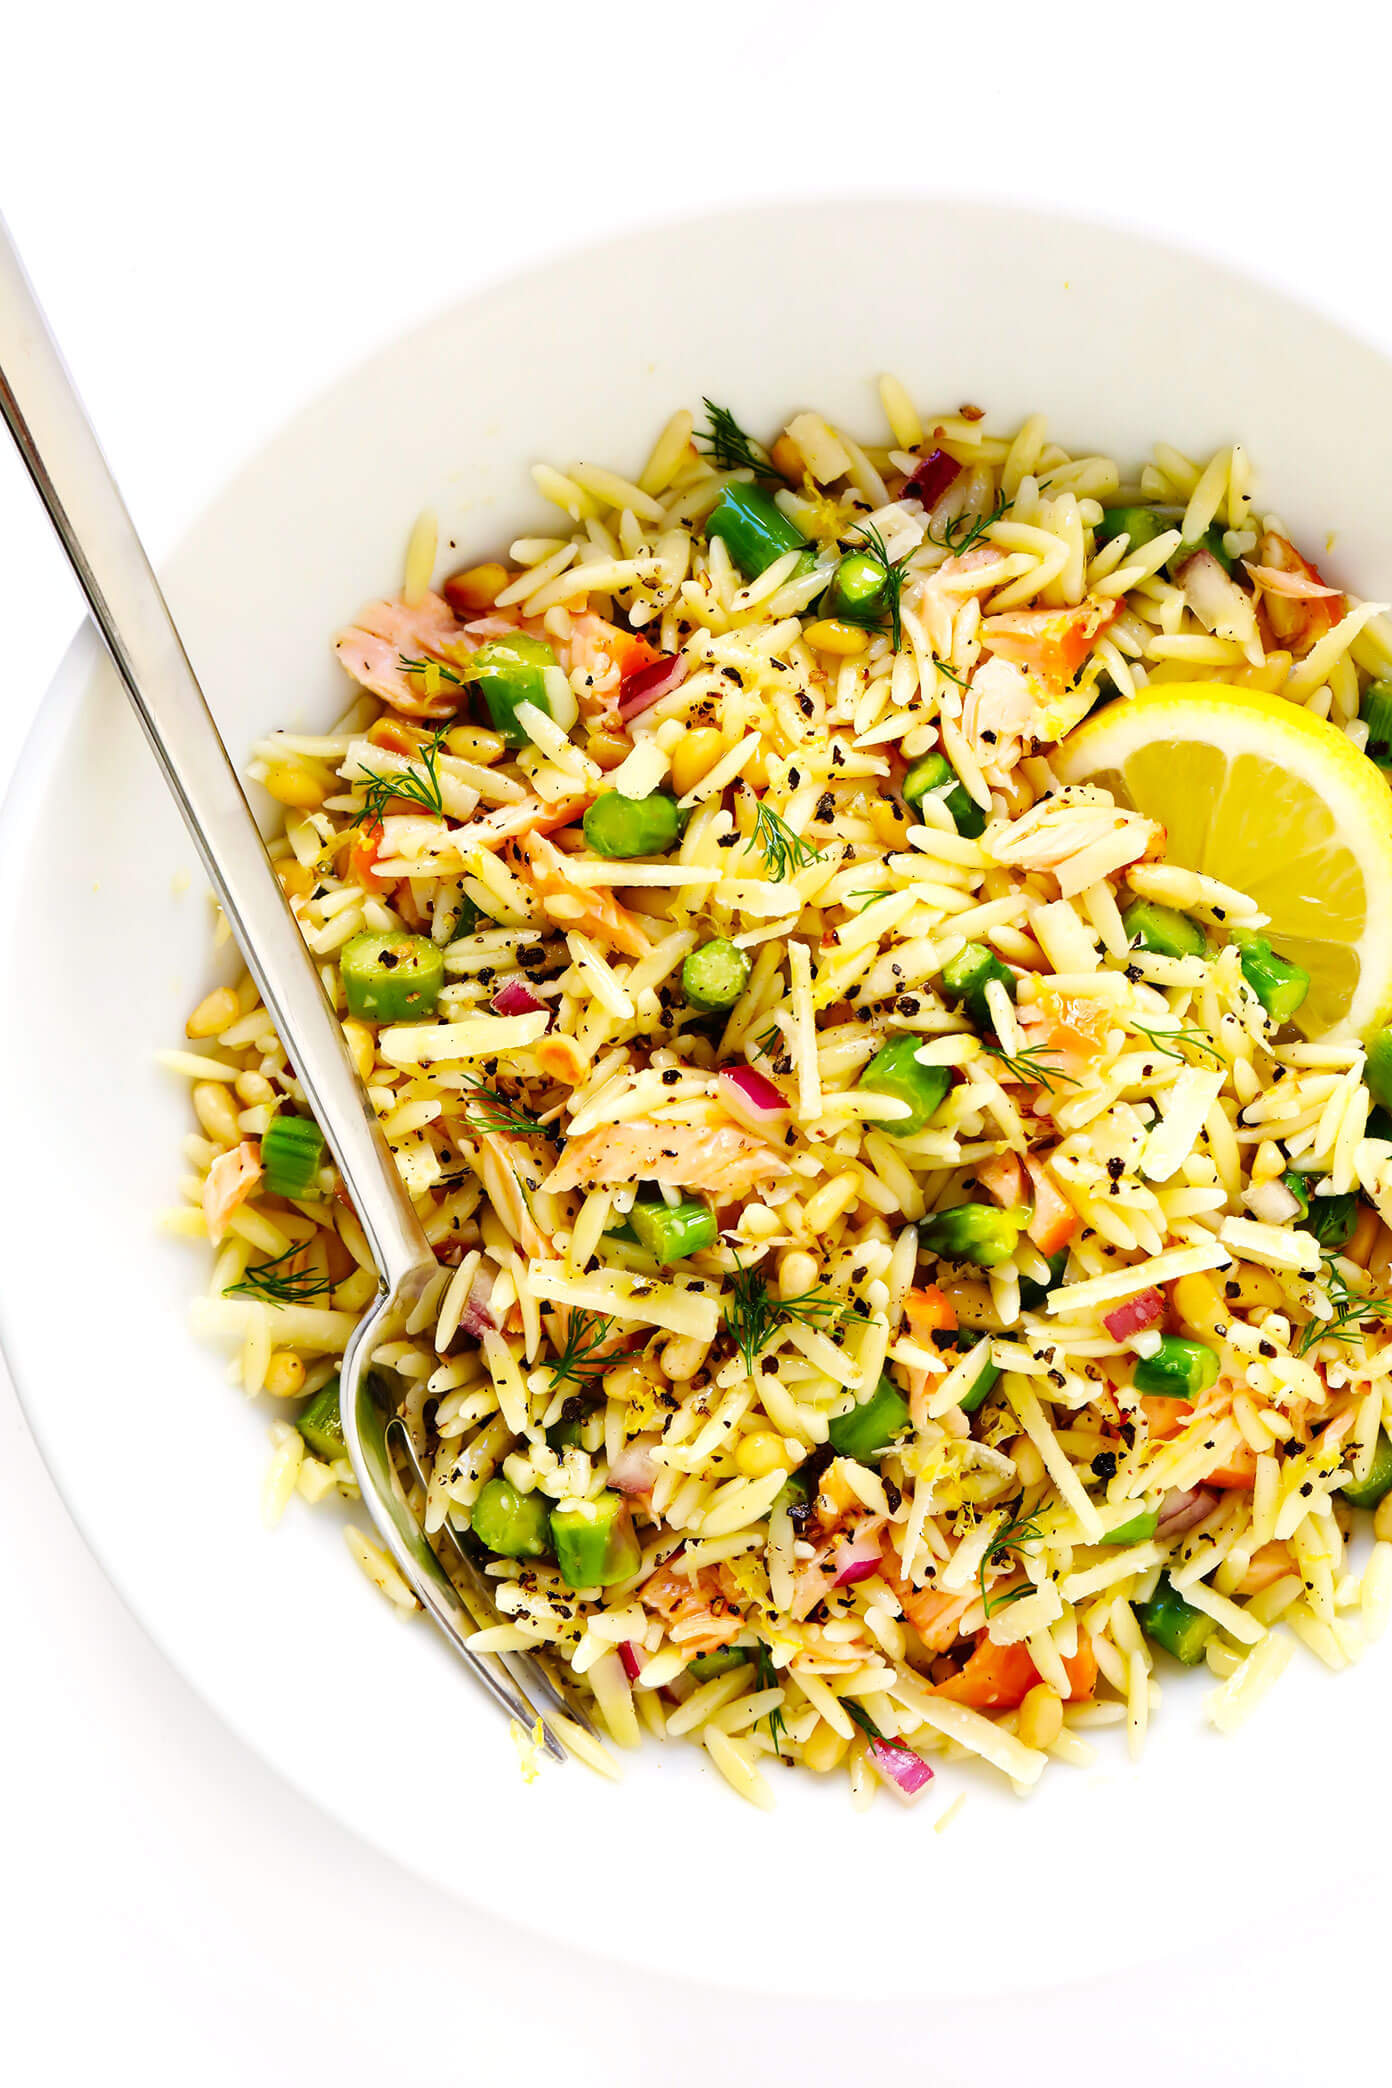 Orzo Salad Recipe with Smoked Salmon, Lemon, Asparagus and Dill